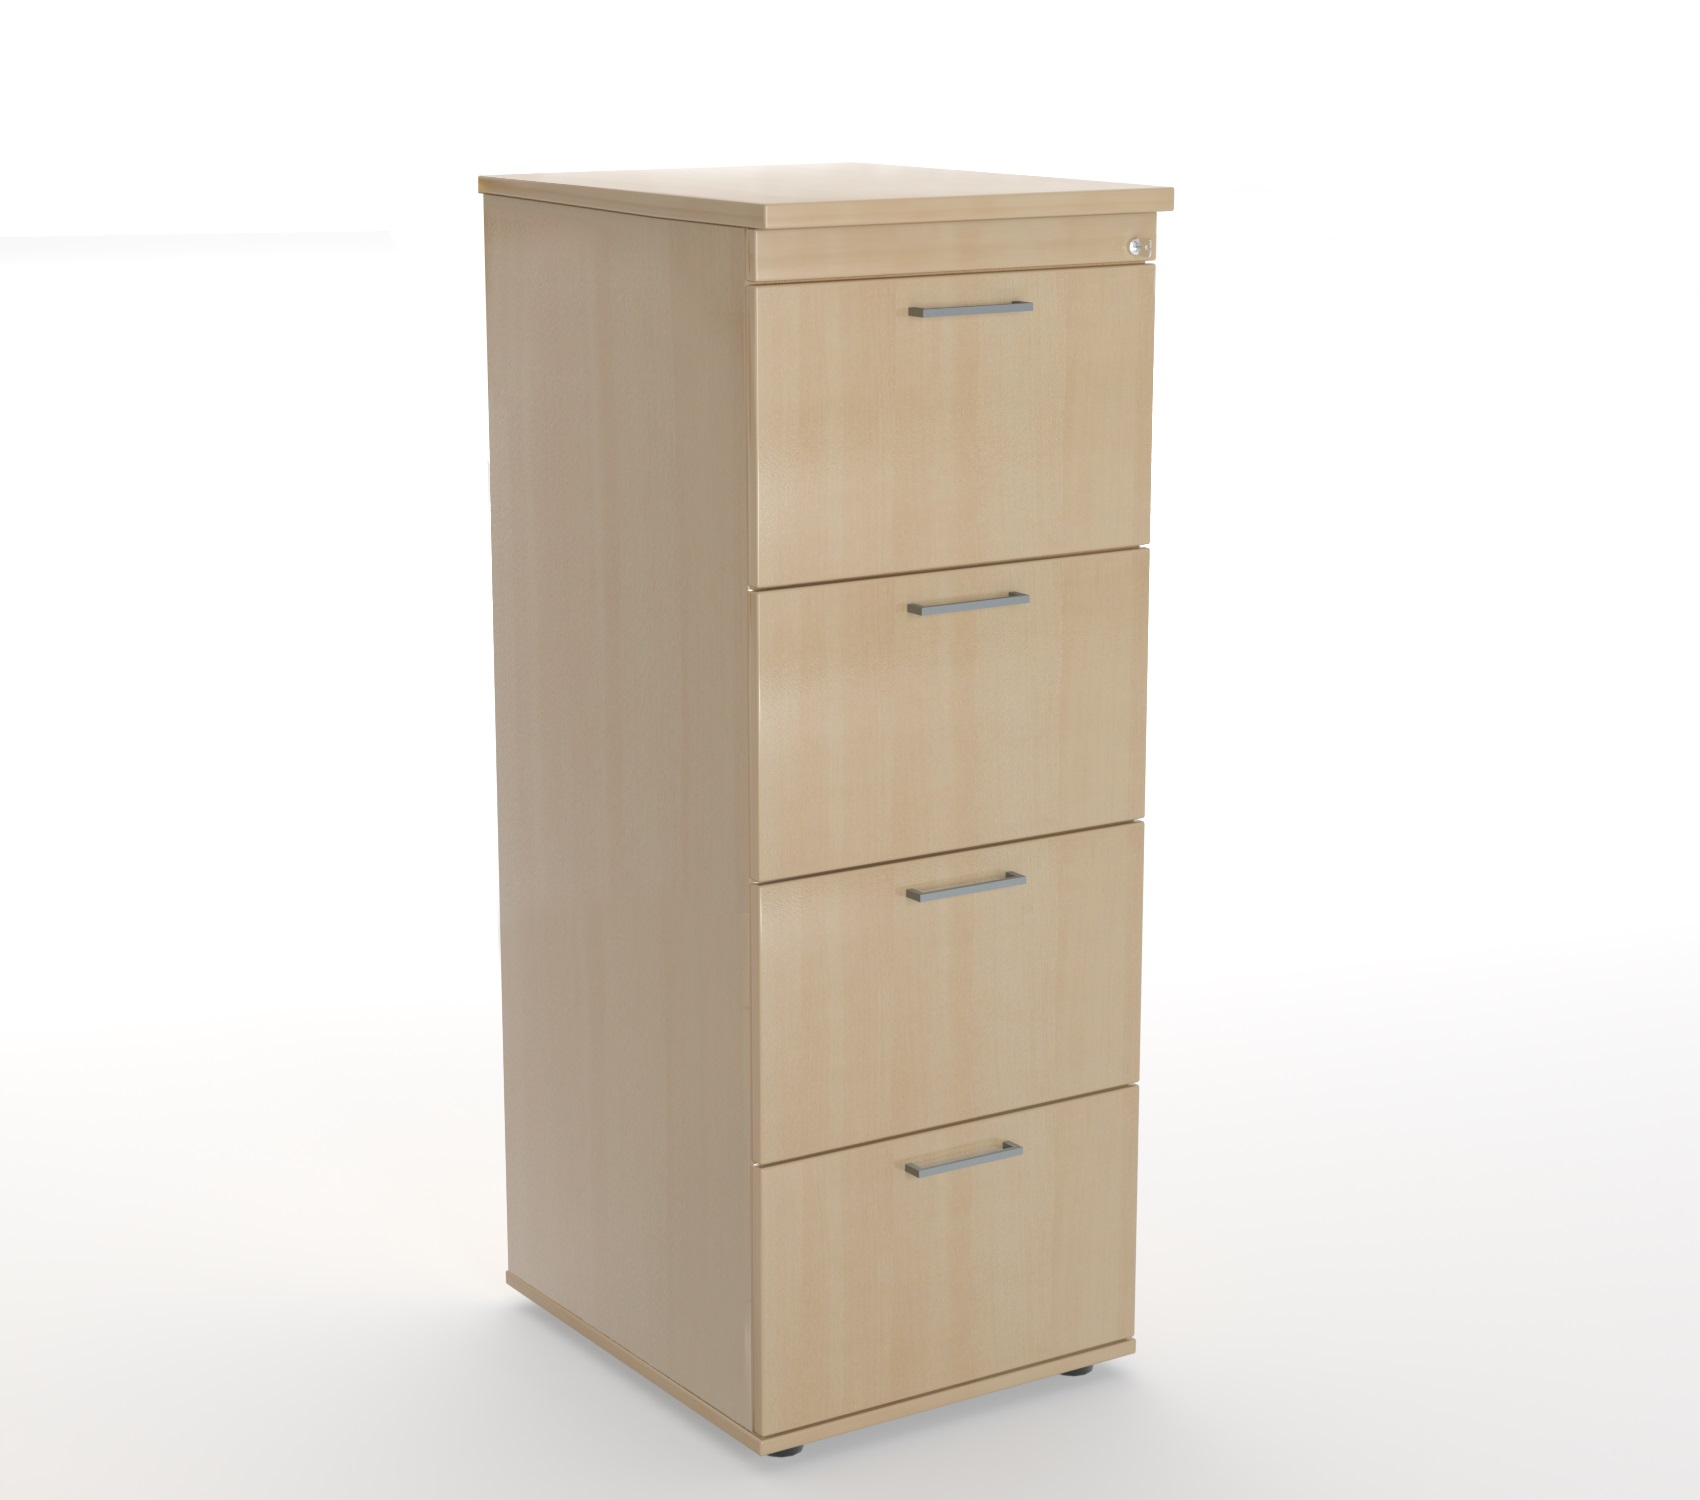 4 drawer filing cabinet pex647 steelco for Cupboard and drawers